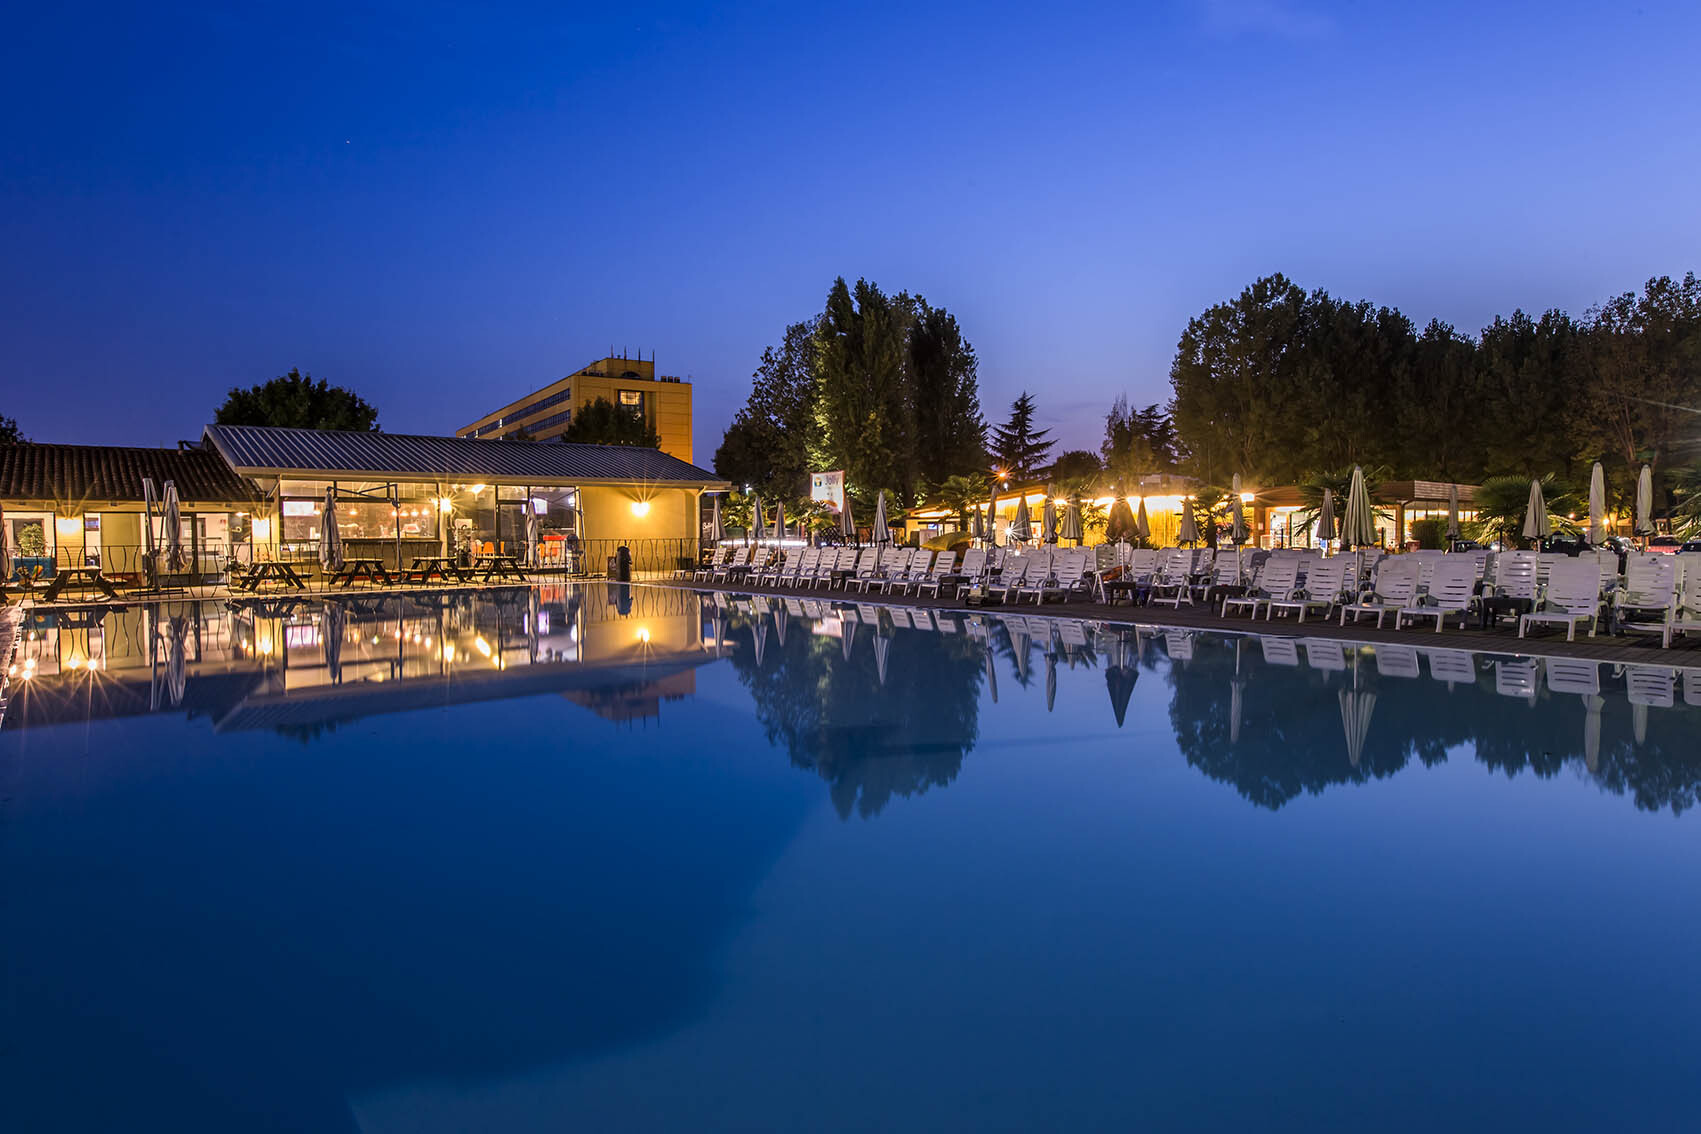 Piscina illuminata nel camping village Jolly a Marghera